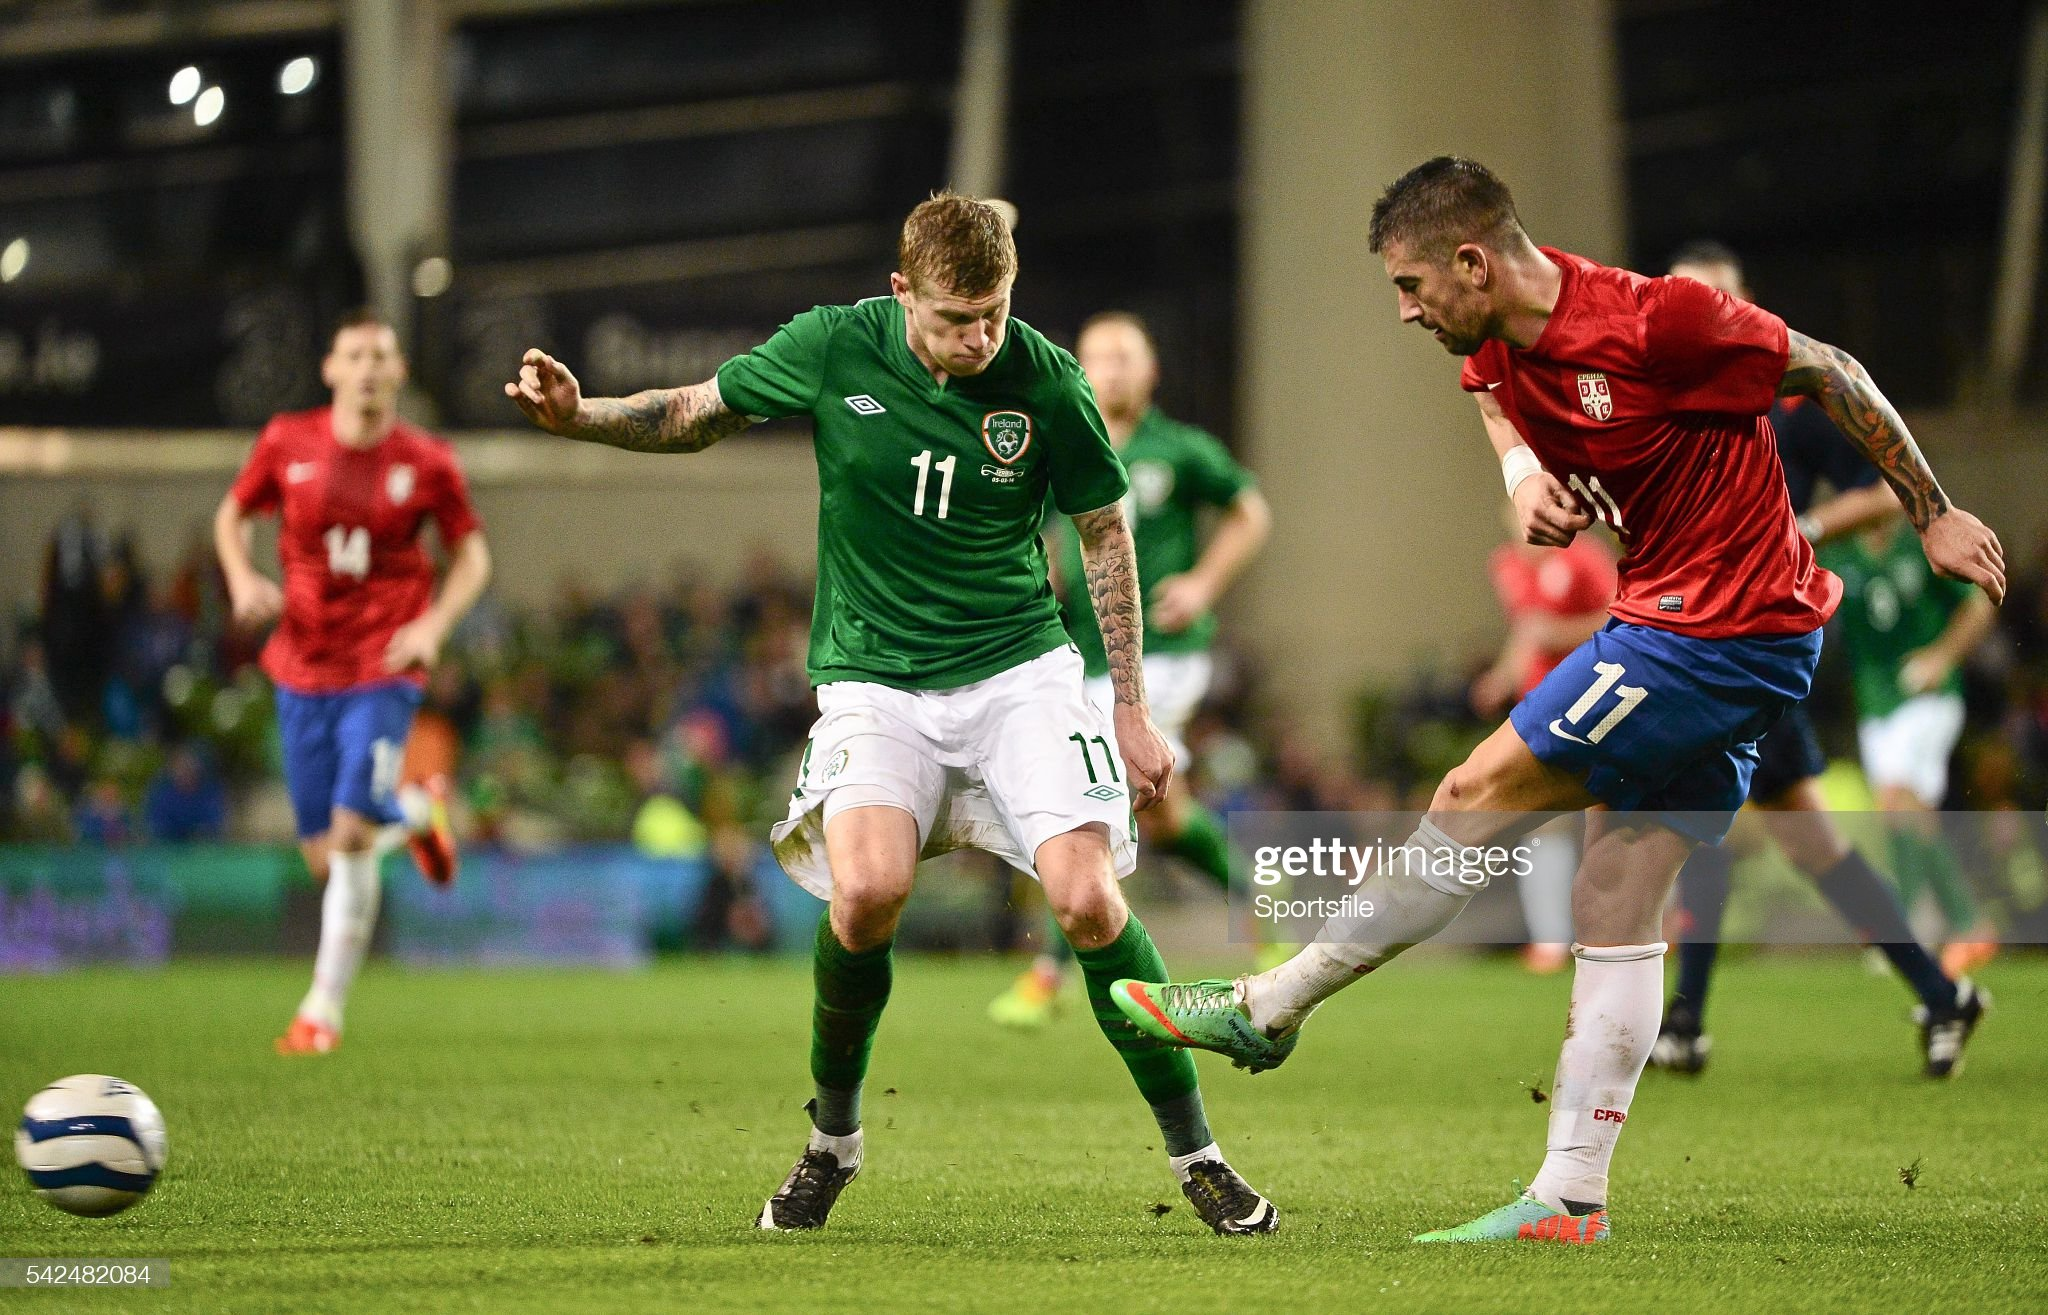 Serbia vs Republic of Ireland preview, prediction and odds